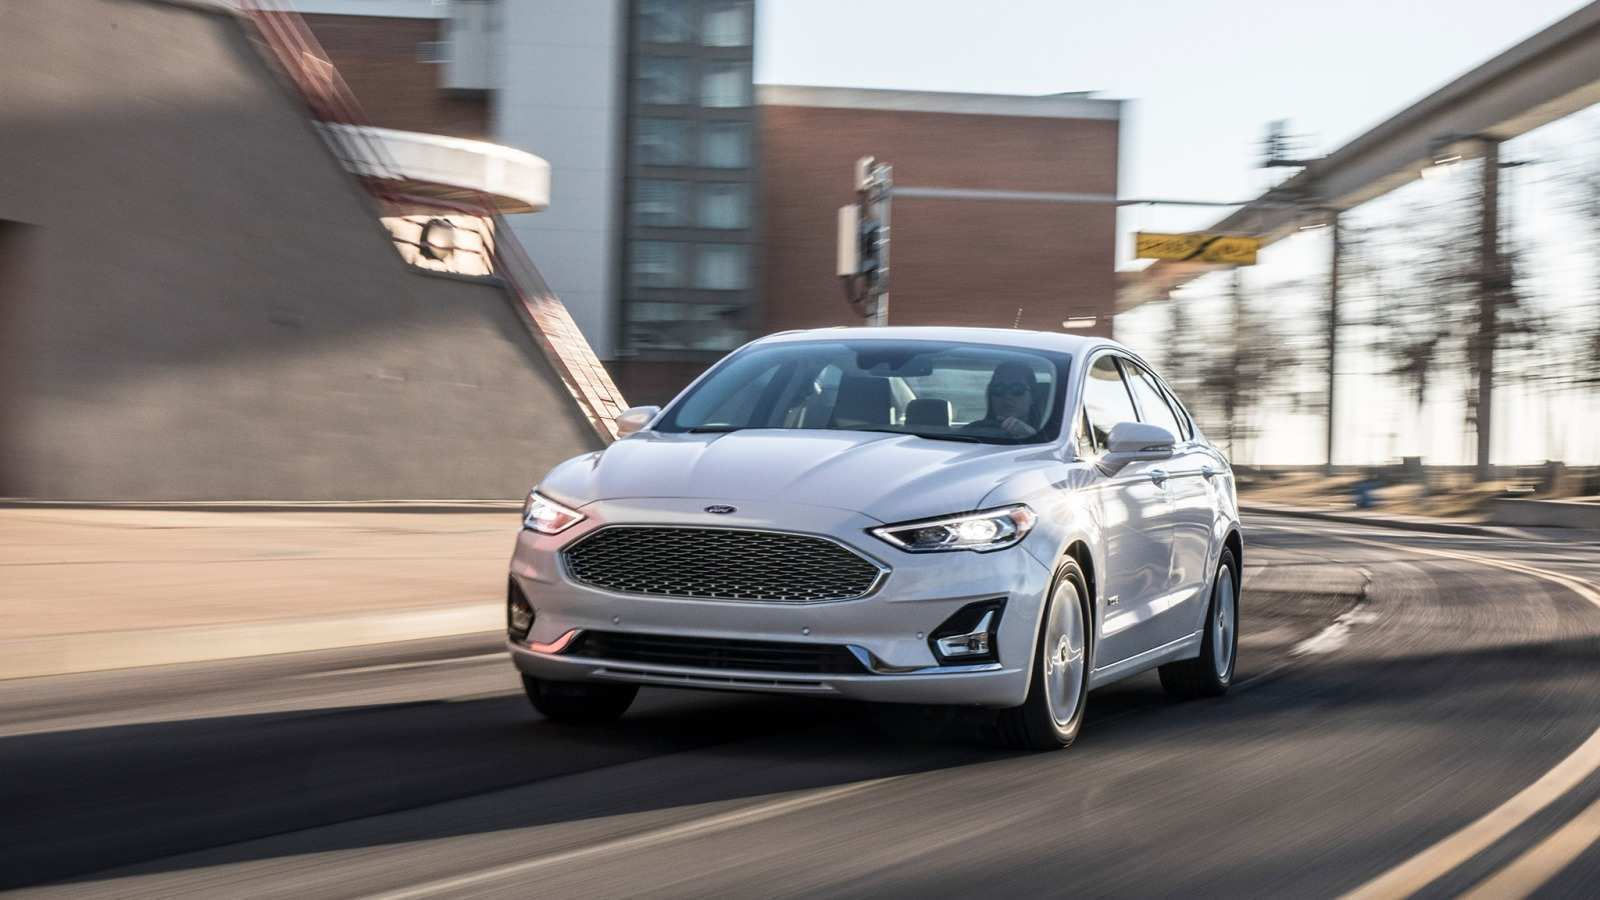 77 Concept of 2019 Ford Hybrid Vehicles Specs for 2019 Ford Hybrid Vehicles